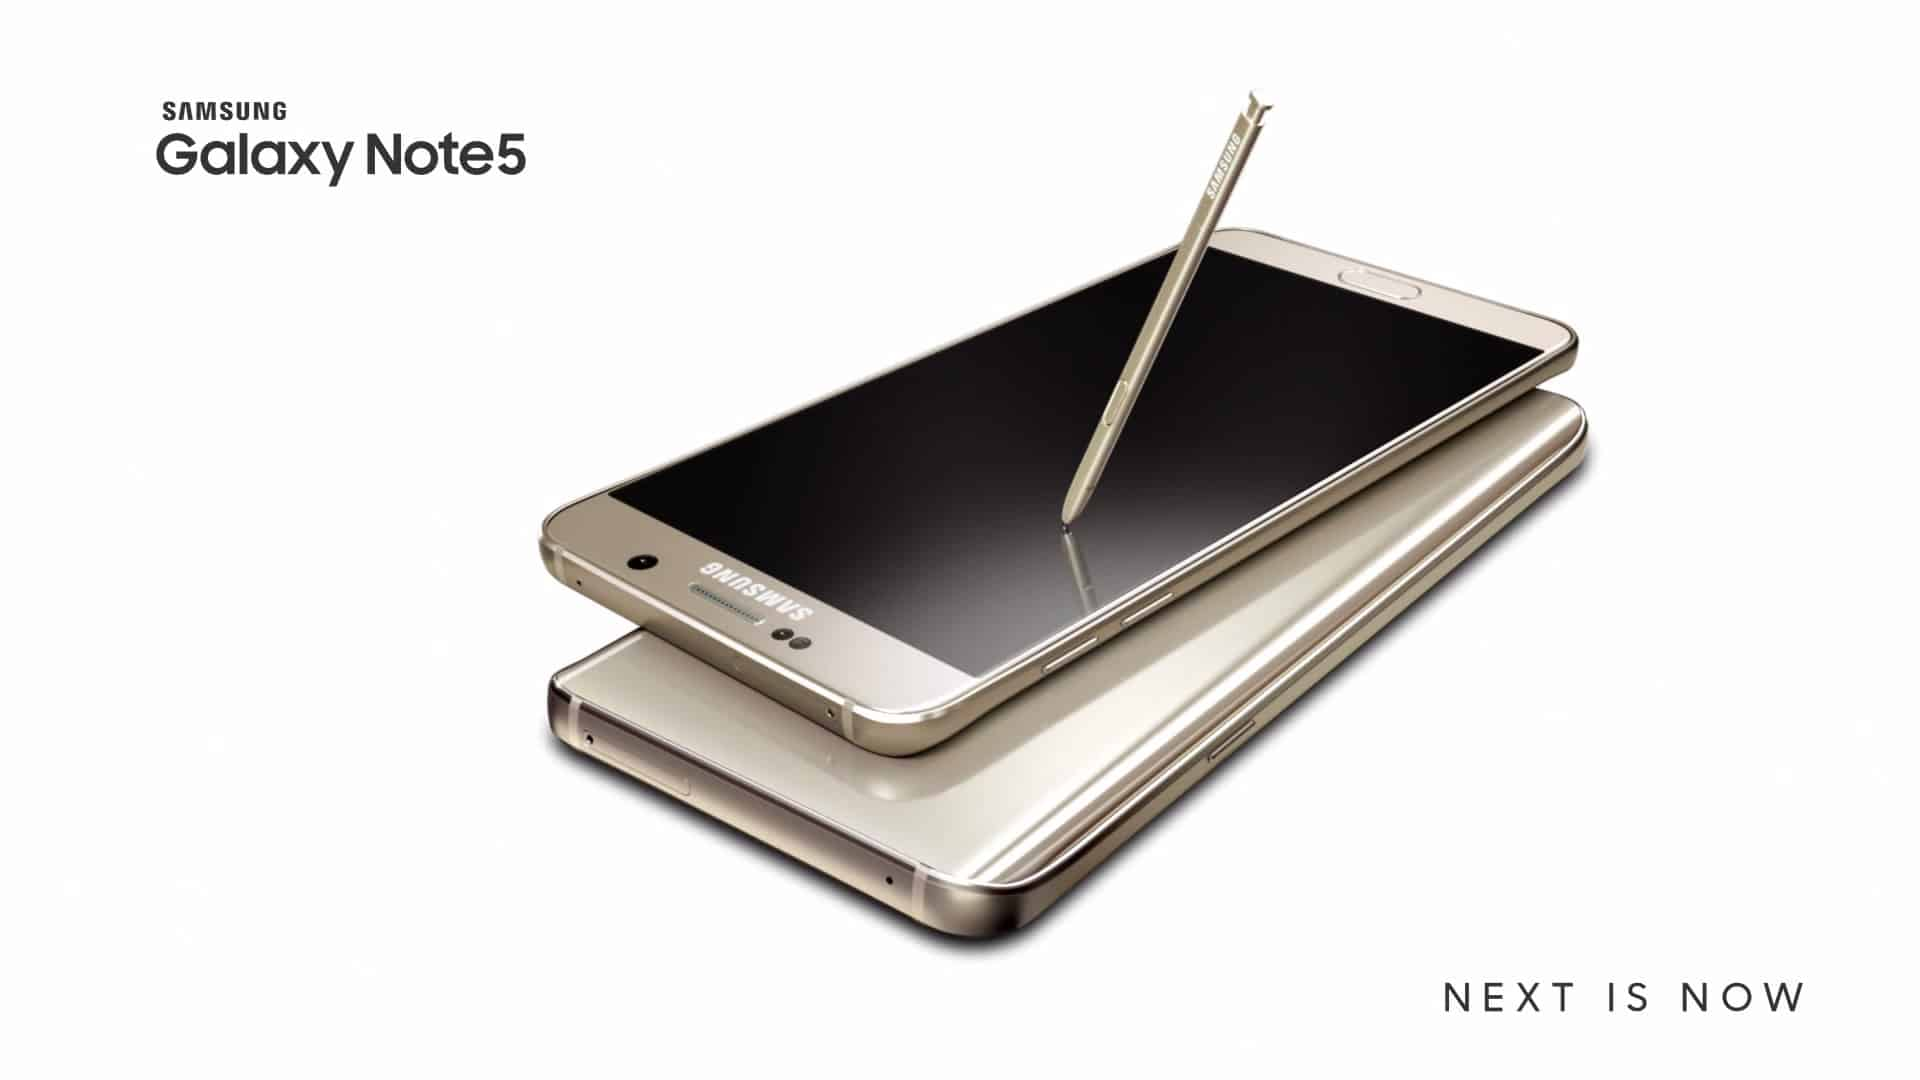 Gold platinum galaxy note 5 now available from t mobile android - Galaxy Note 5 In Gold Platinum Now Available From T Mobile